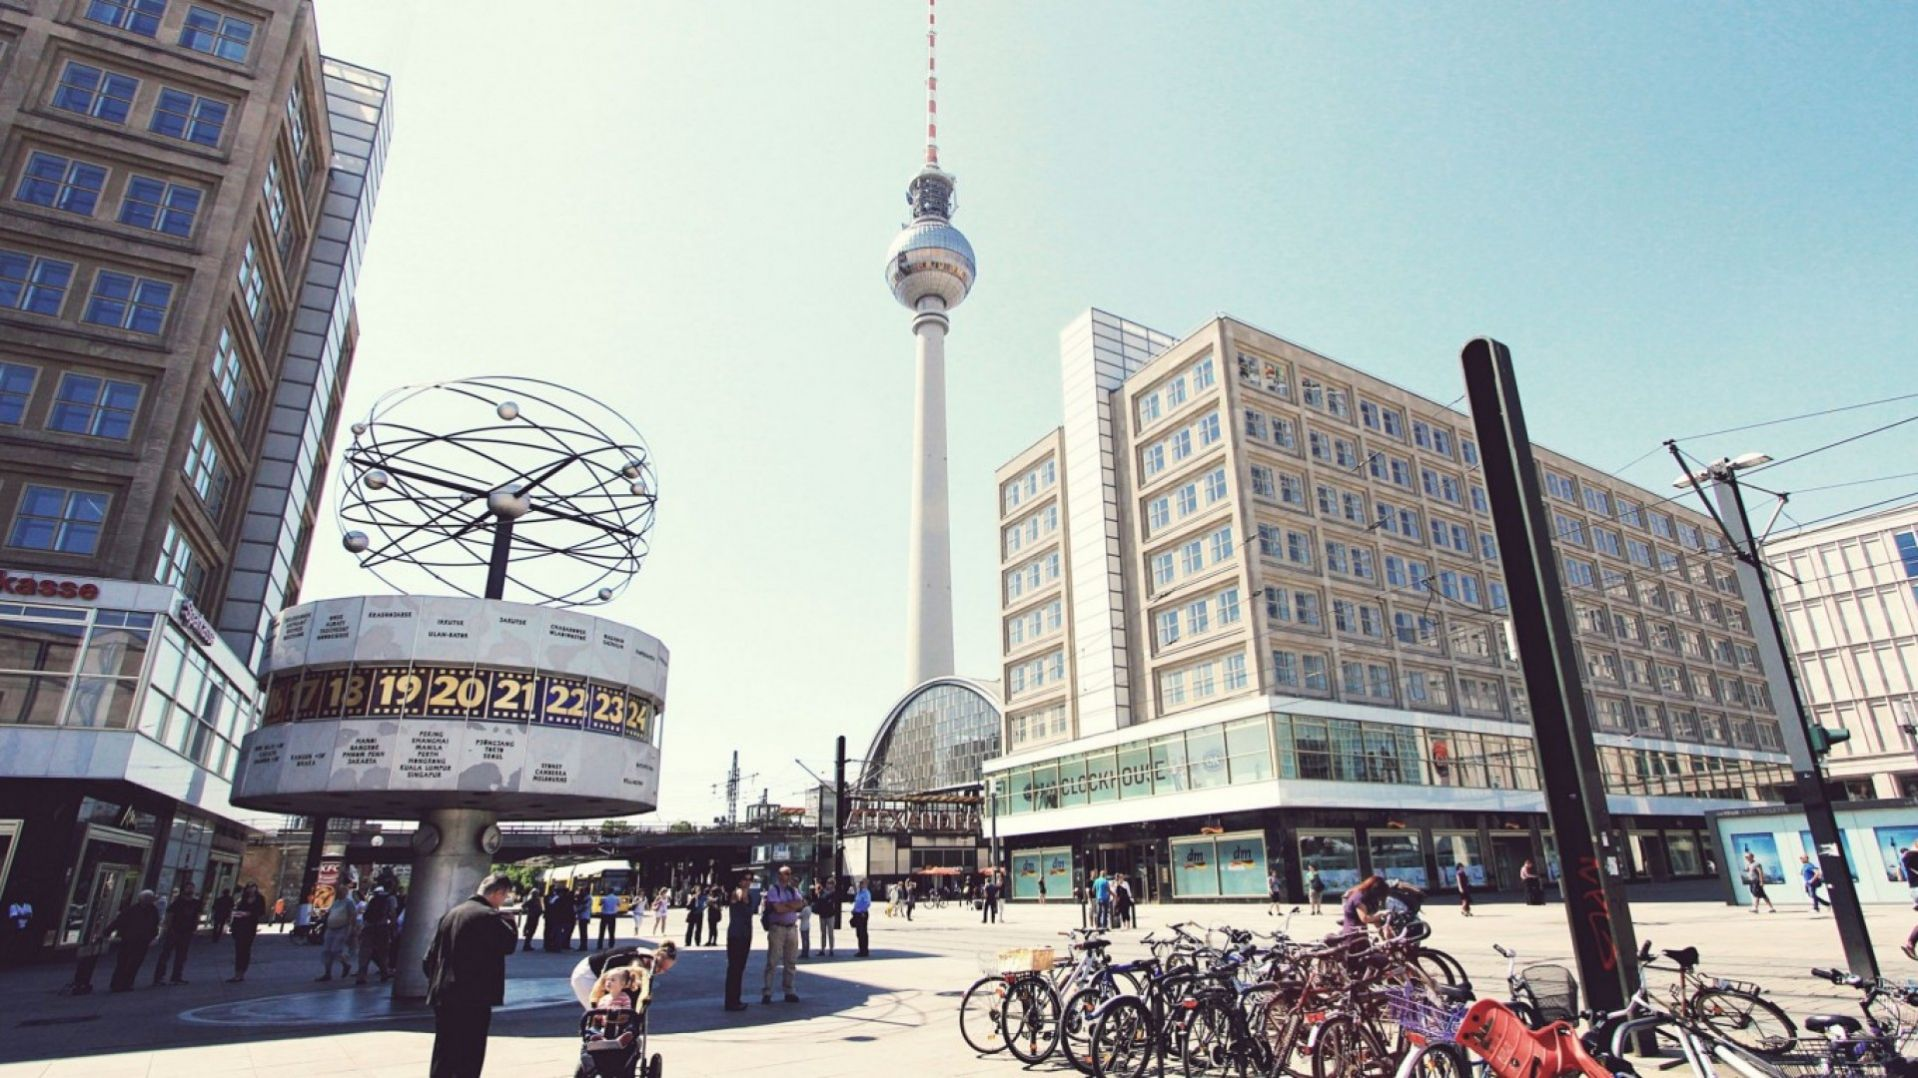 Check Out Television Tower Berlin Germany Hd Wallpapers In Wide We Add Quality Wallpapers Cover Pictures And Funny Picture Berlin City World Images Cityscape